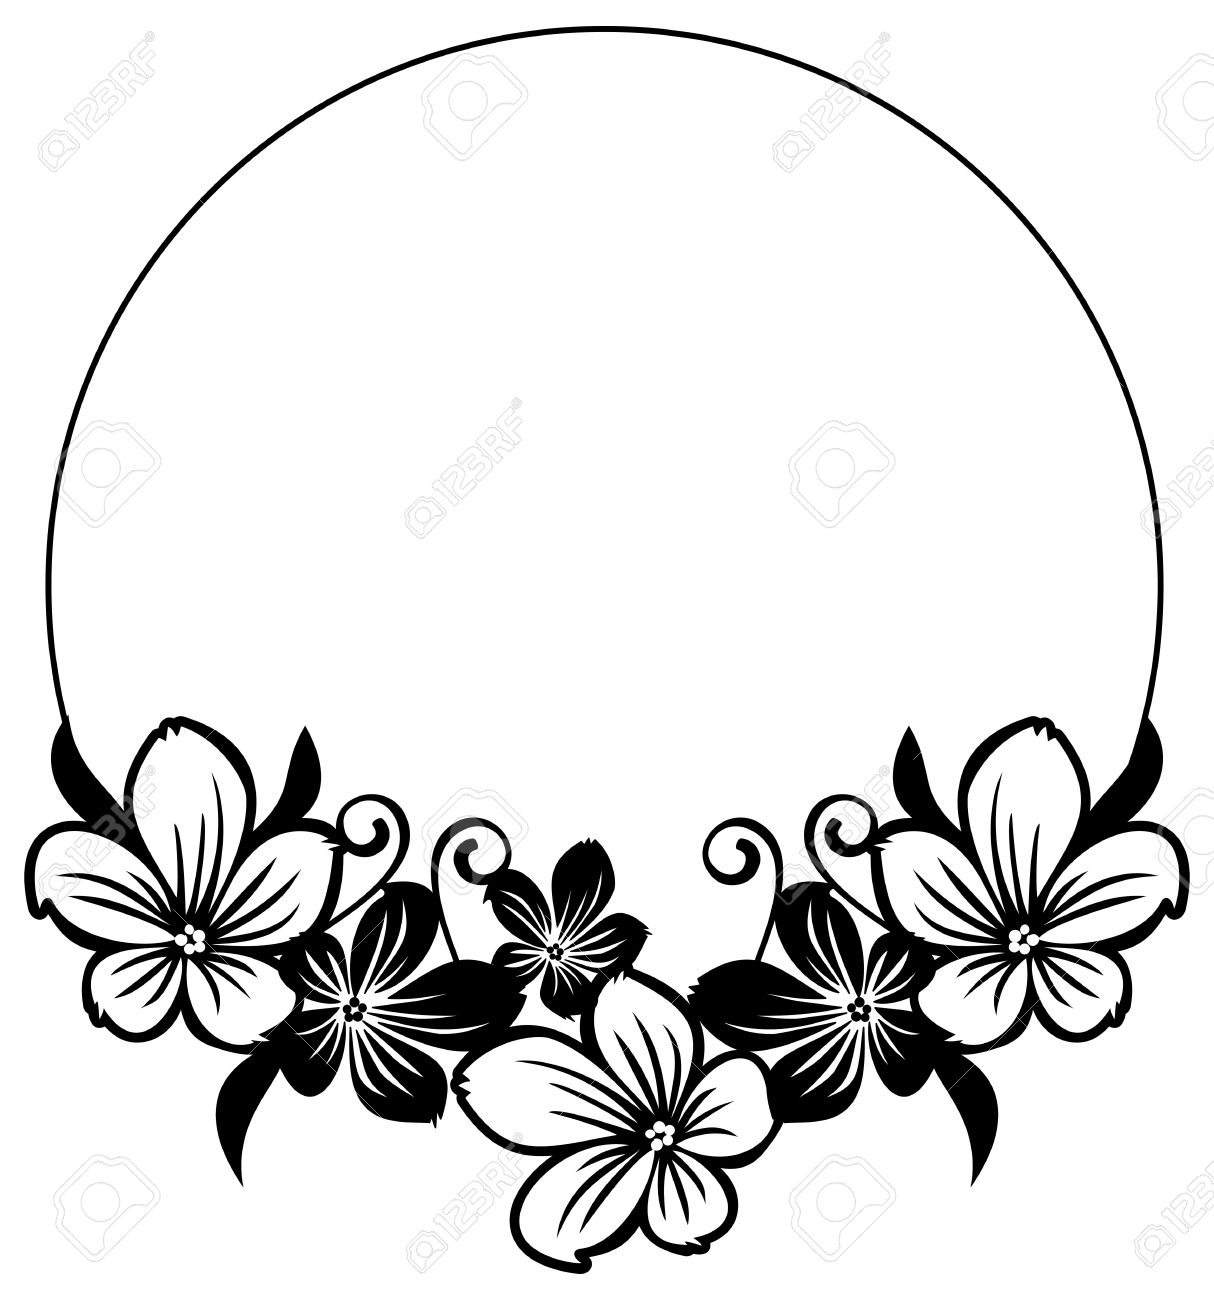 Black and white round frame with abstract flowers silhouettes black and white round frame with abstract flowers silhouettes vector clip art stock vector mightylinksfo